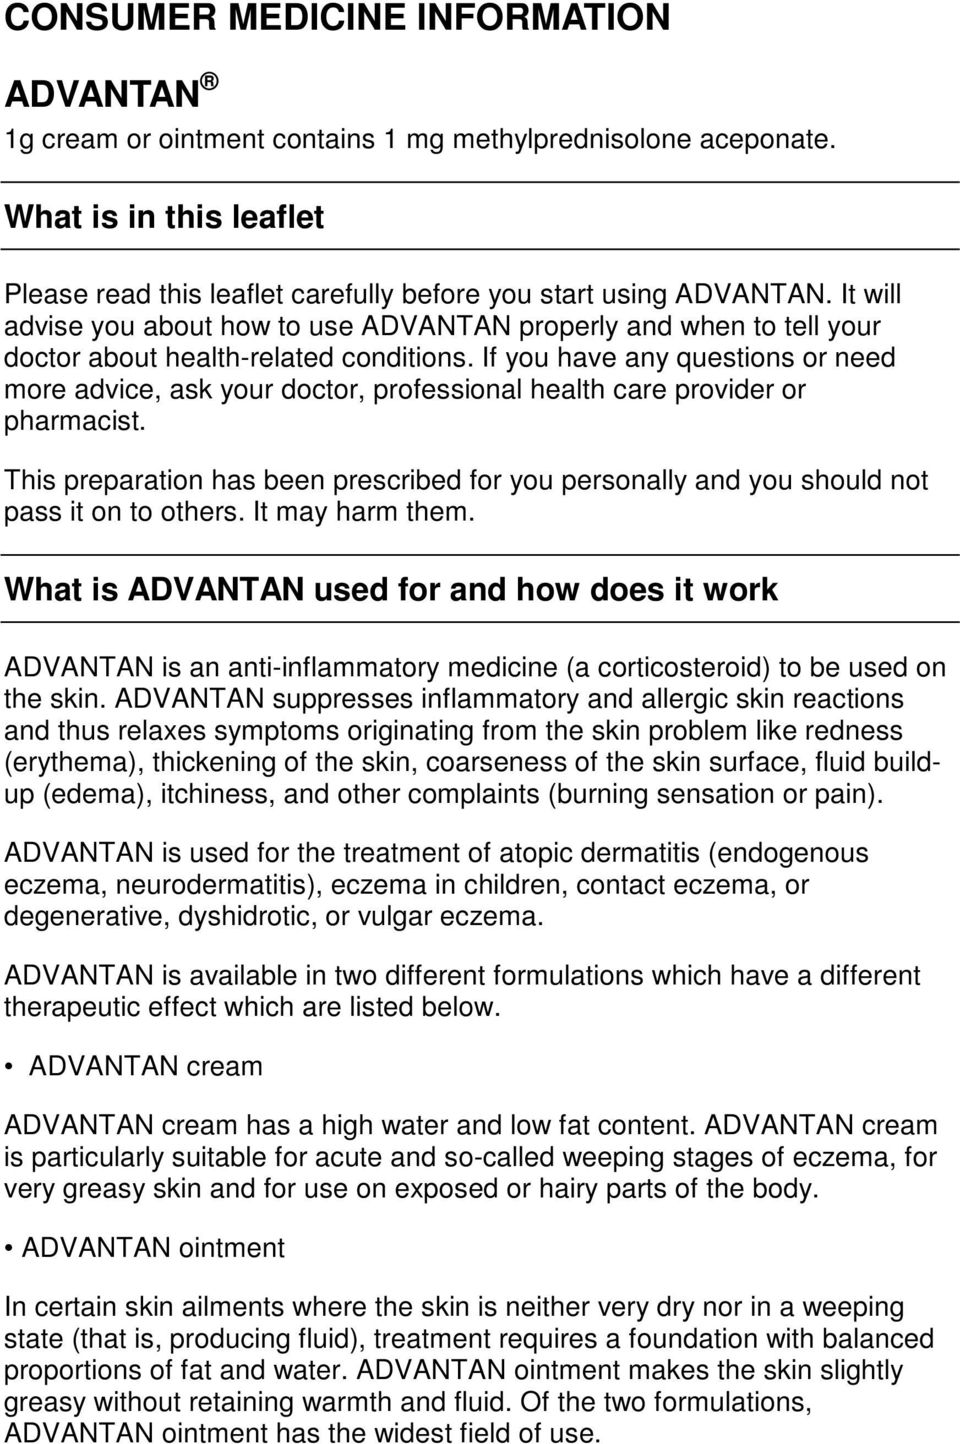 The drug Advantan: instructions, references, recommendations